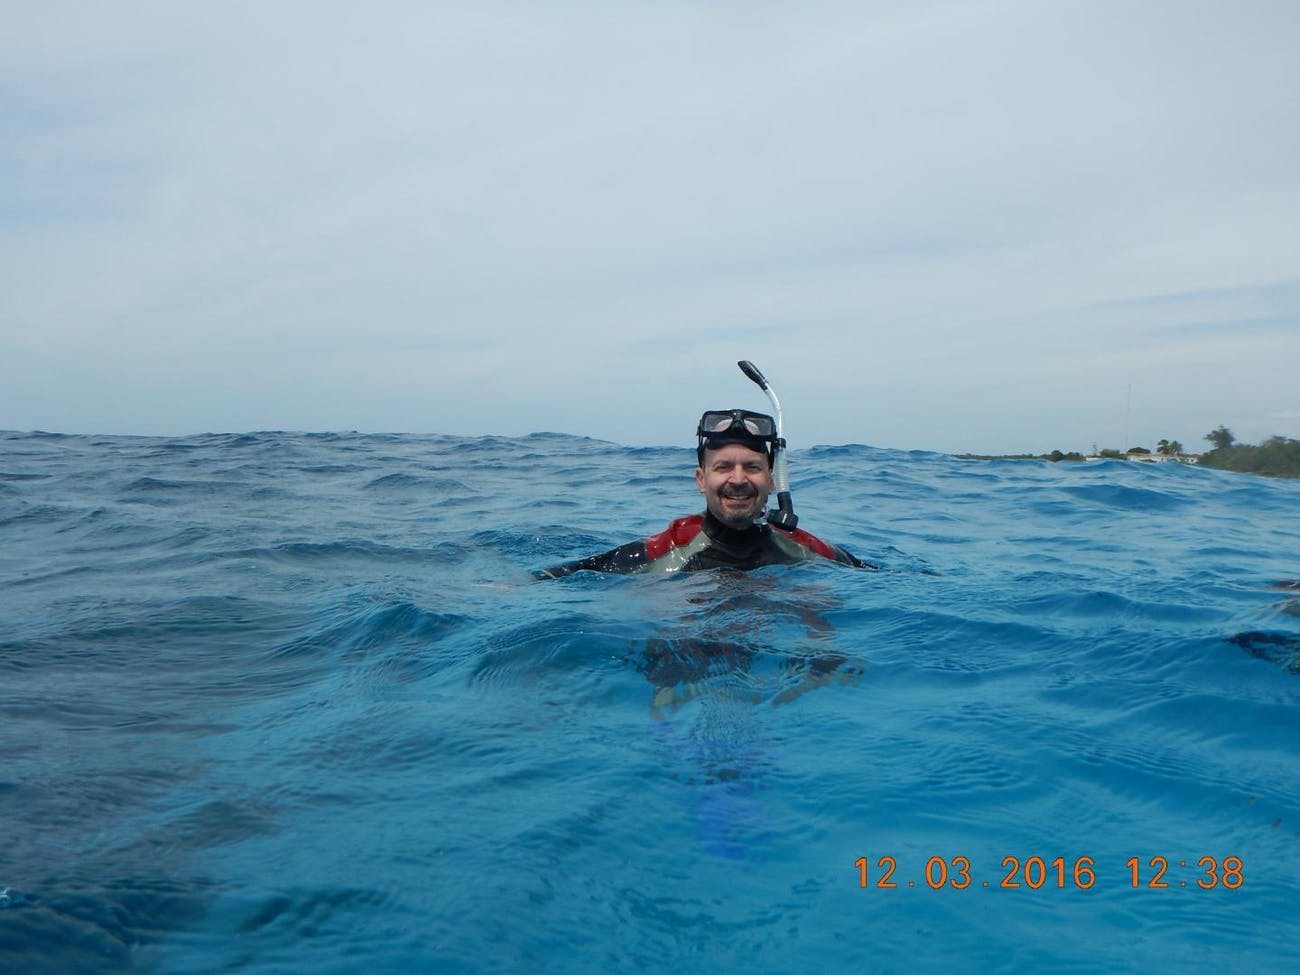 University of Vermont marine biologist Joe Roman snorkeling off the coast of Cuba.